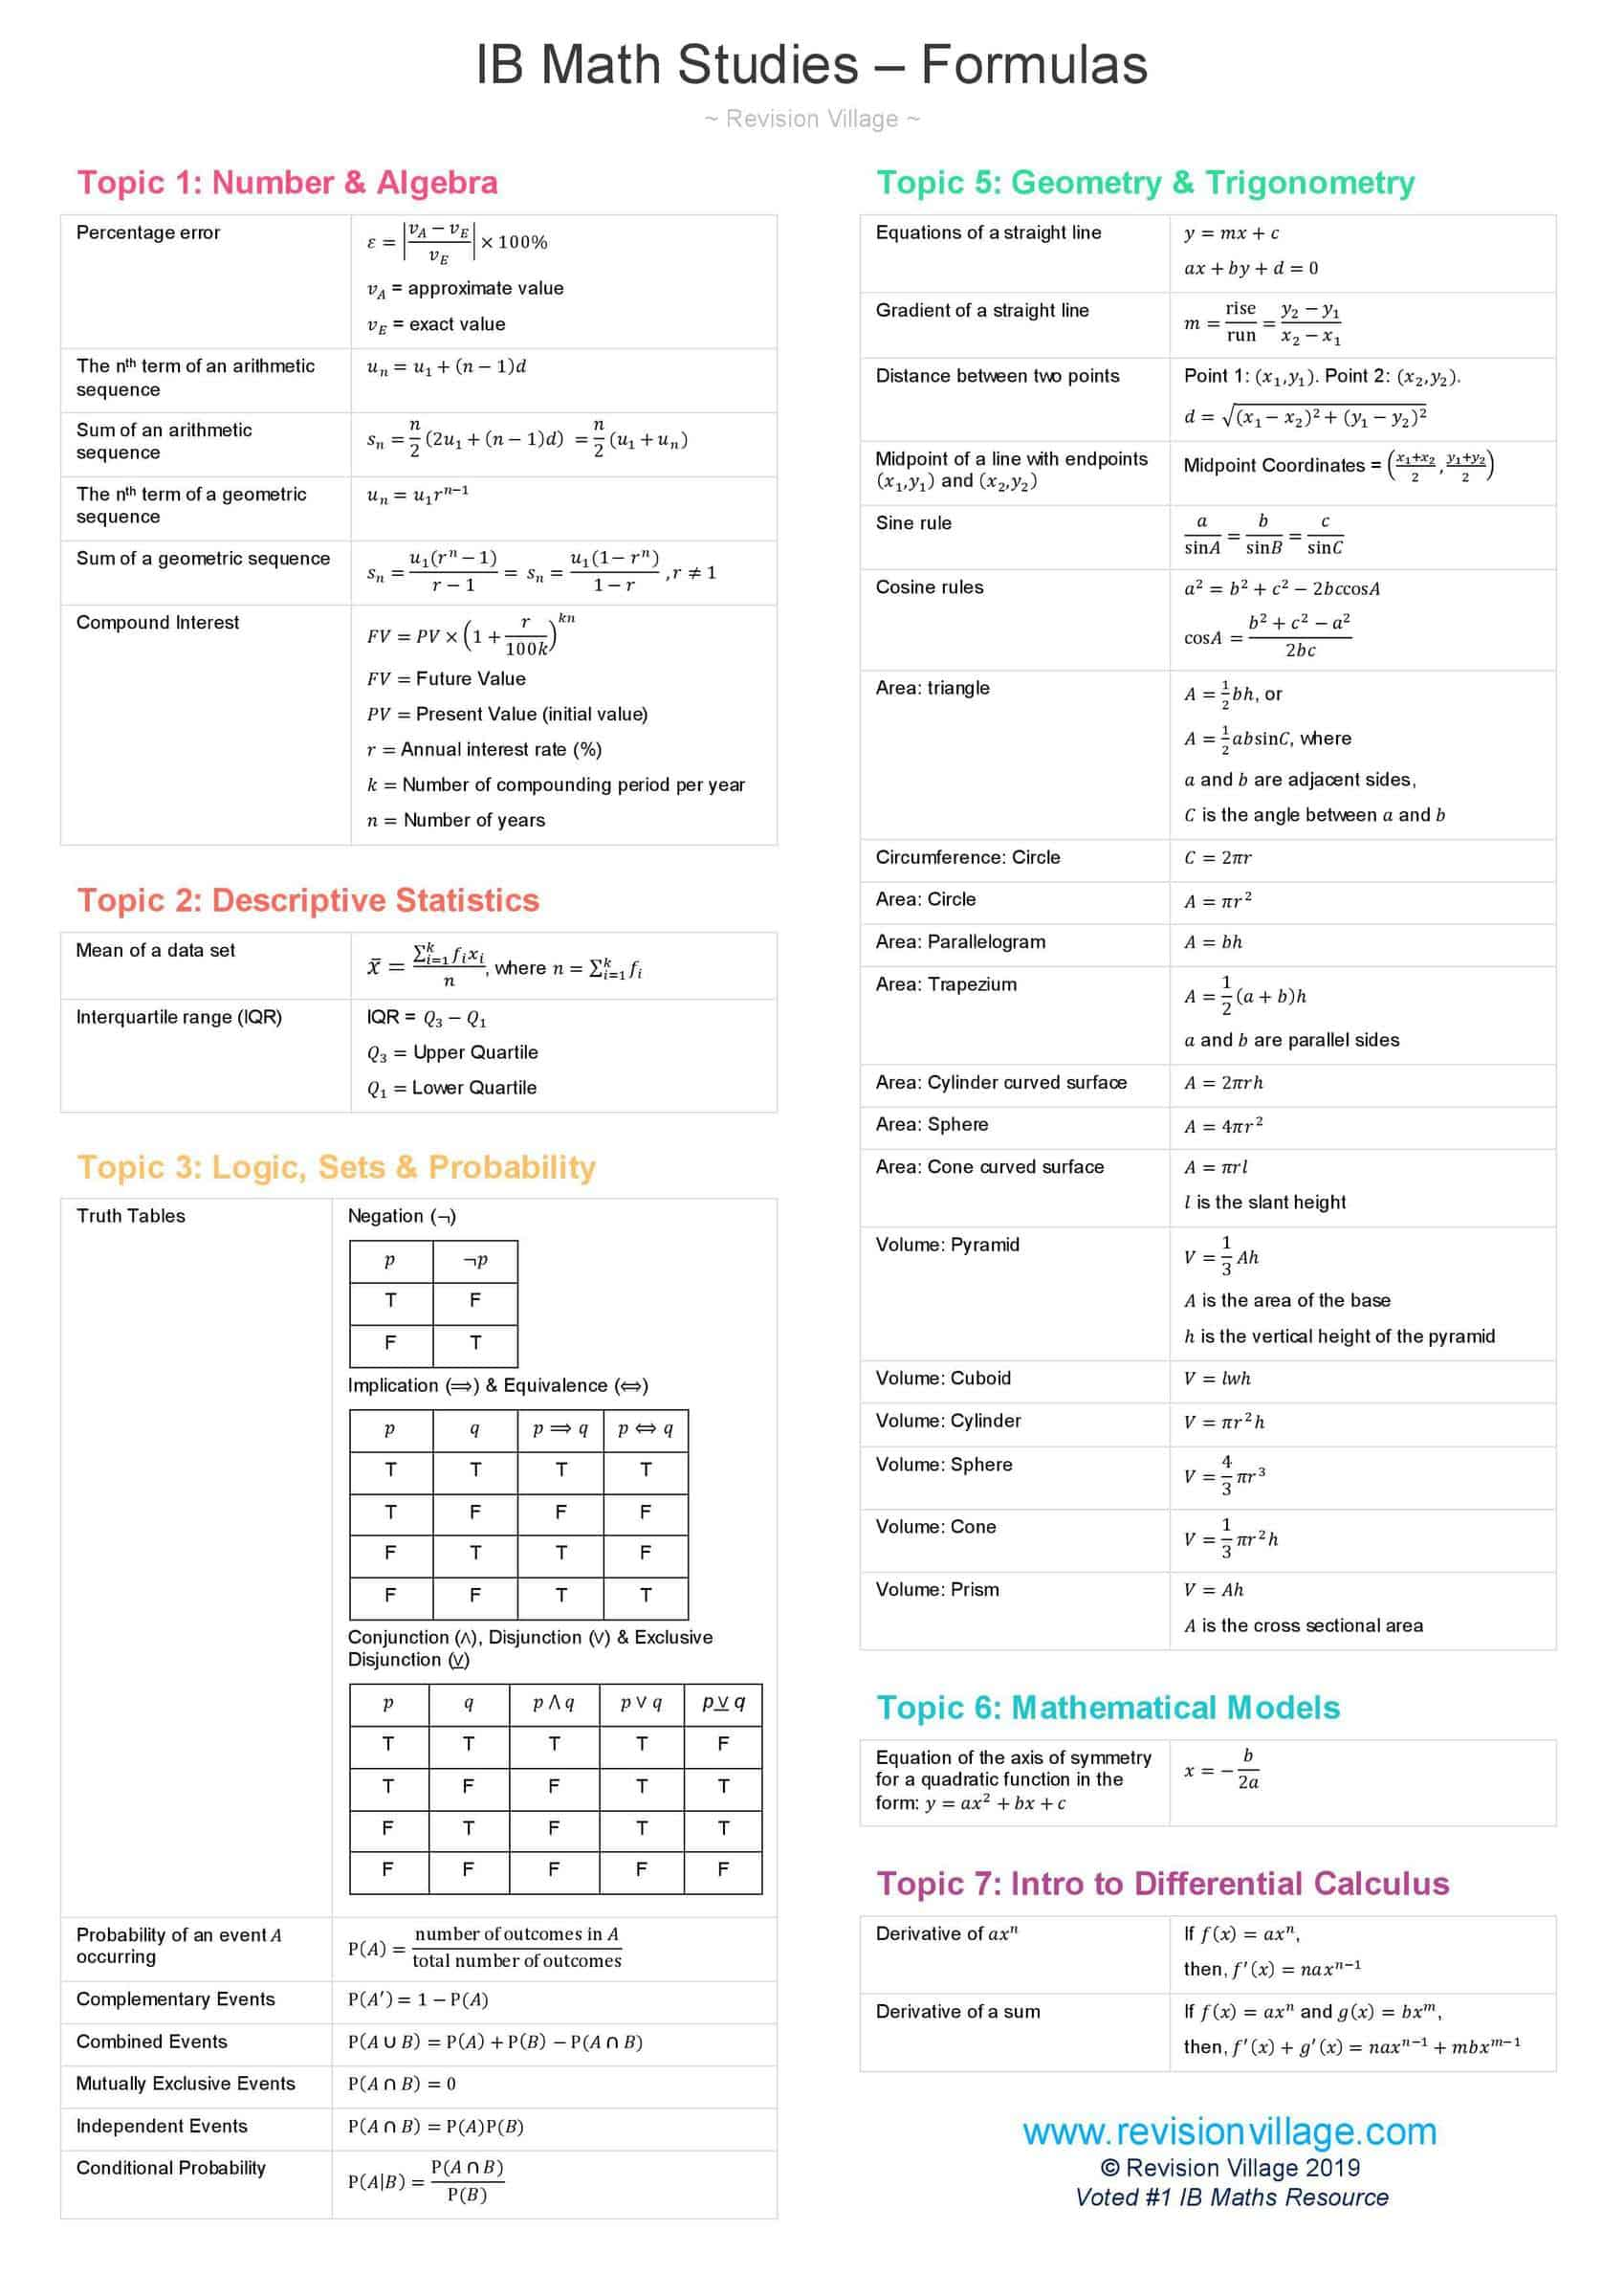 IB Math Studies Formula Booklet